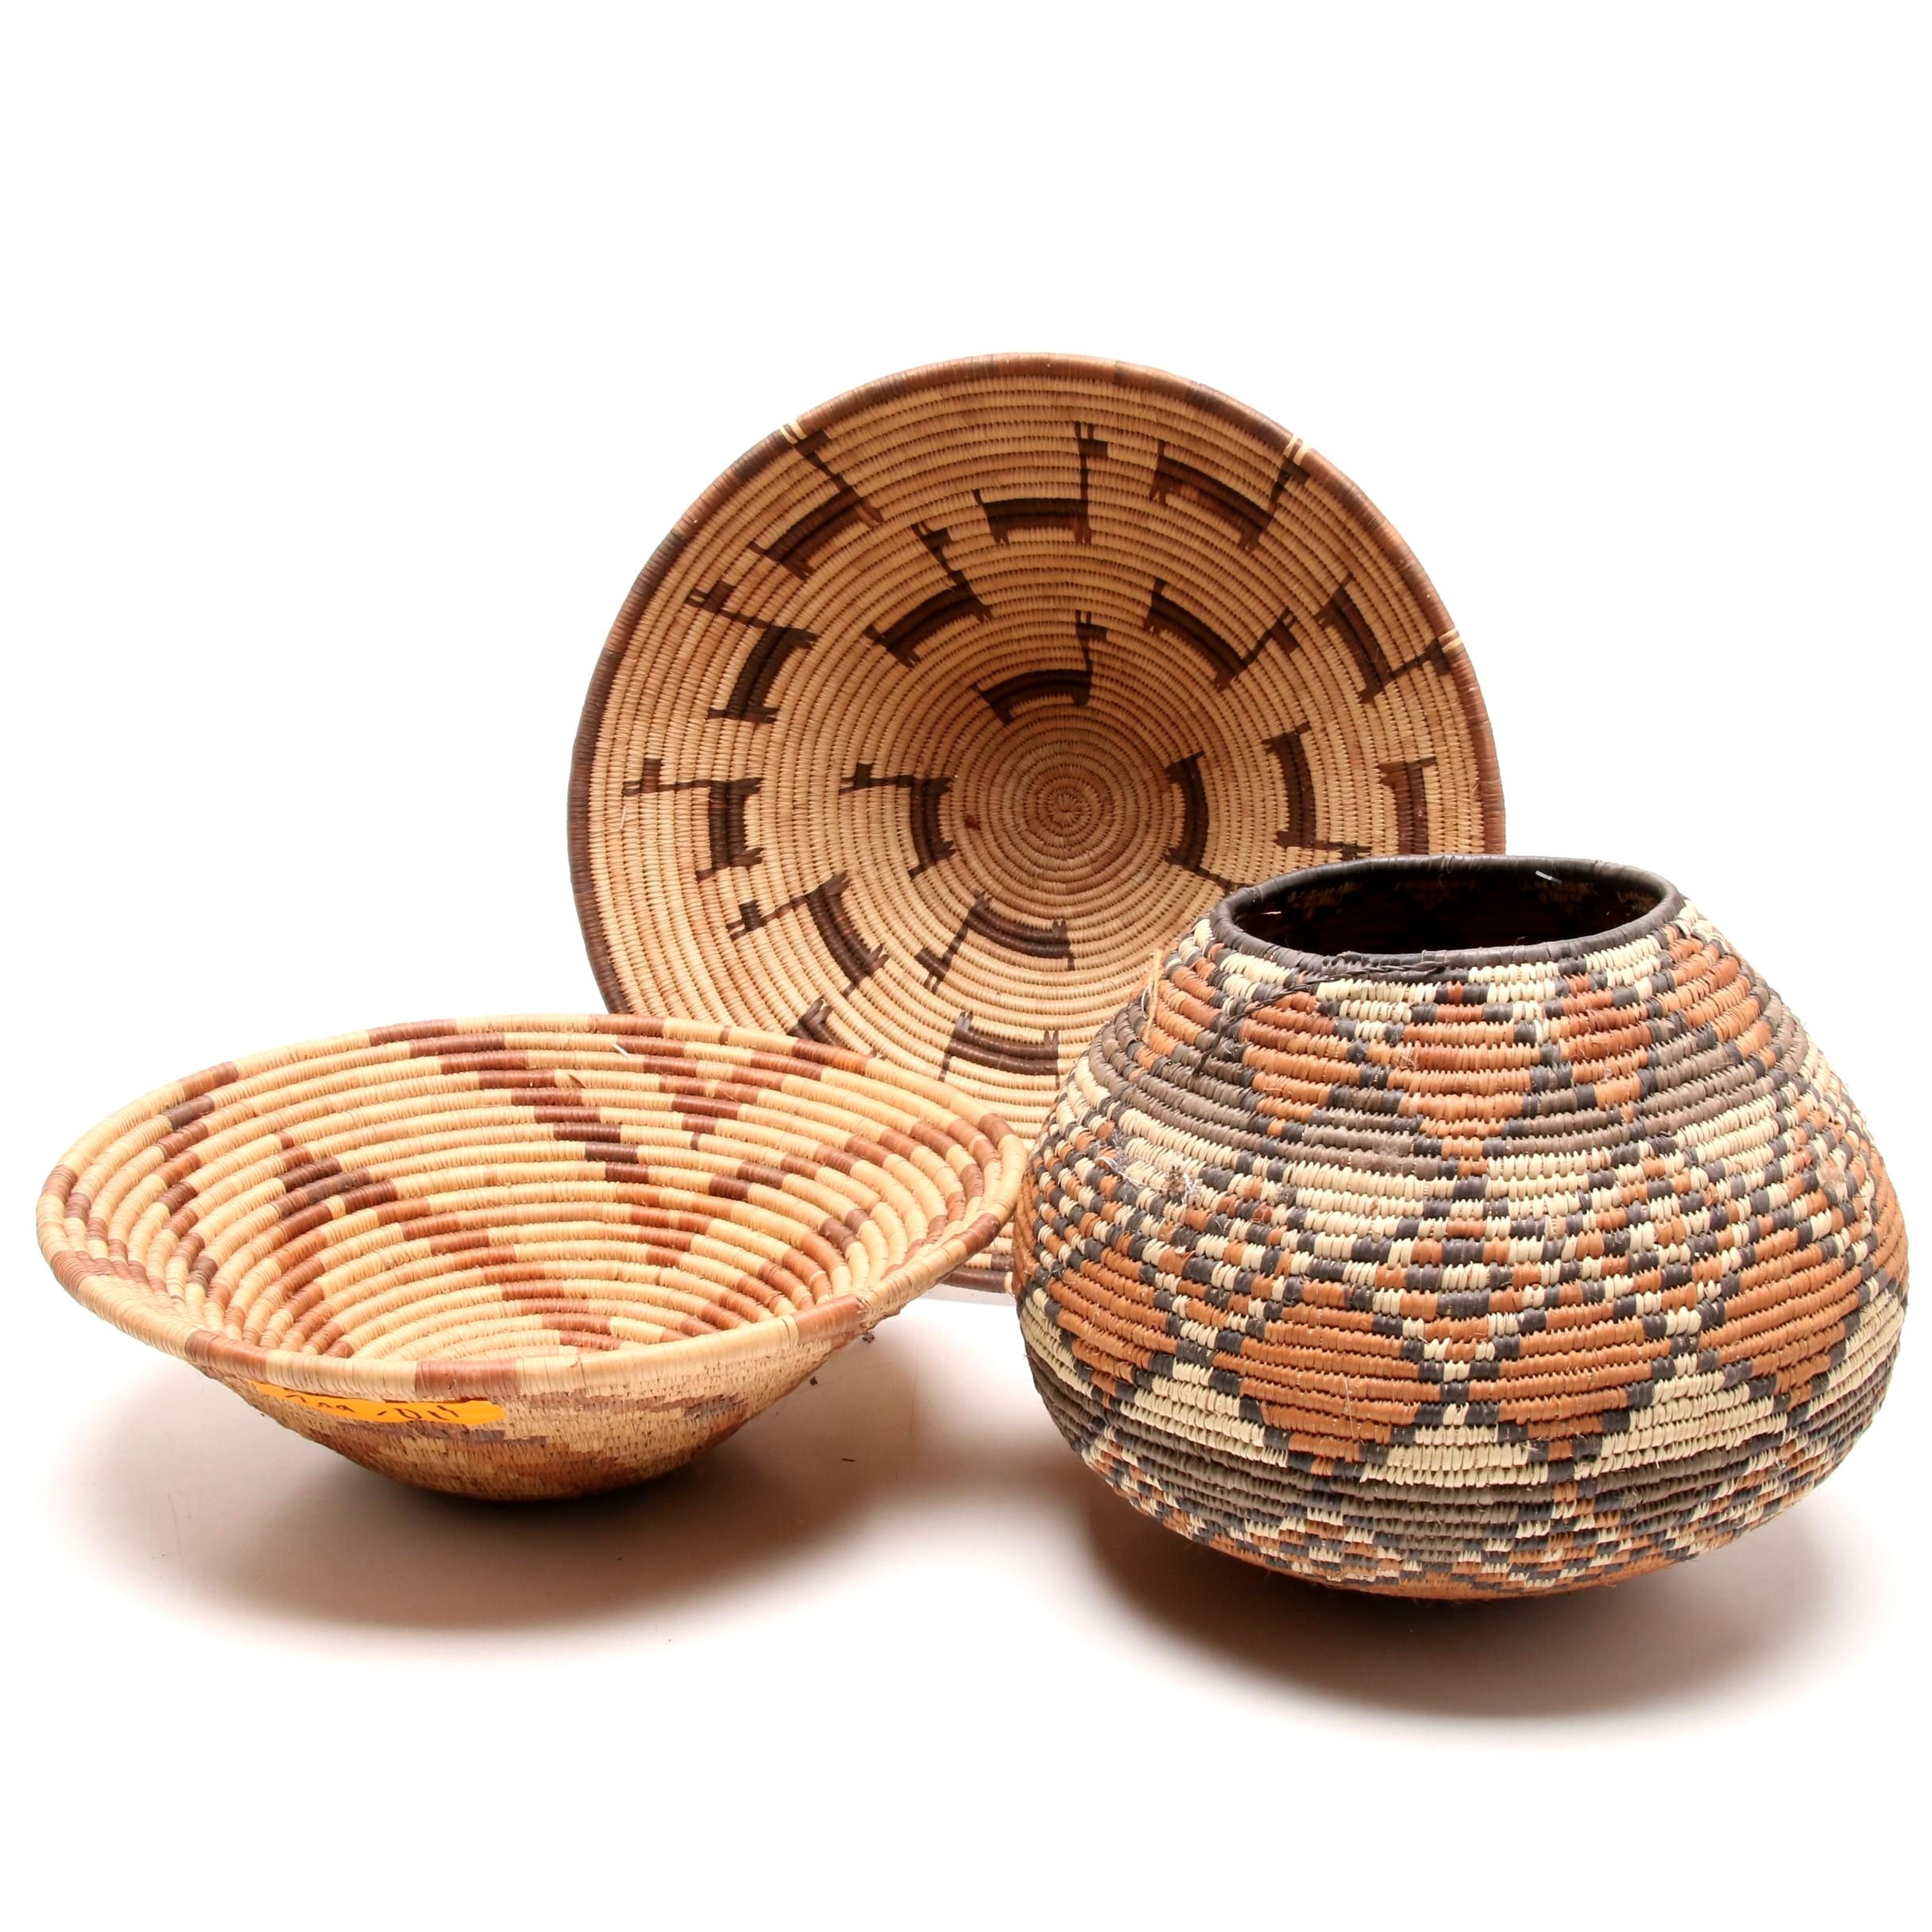 African Zulu Traditional Woven Basket and Bowls